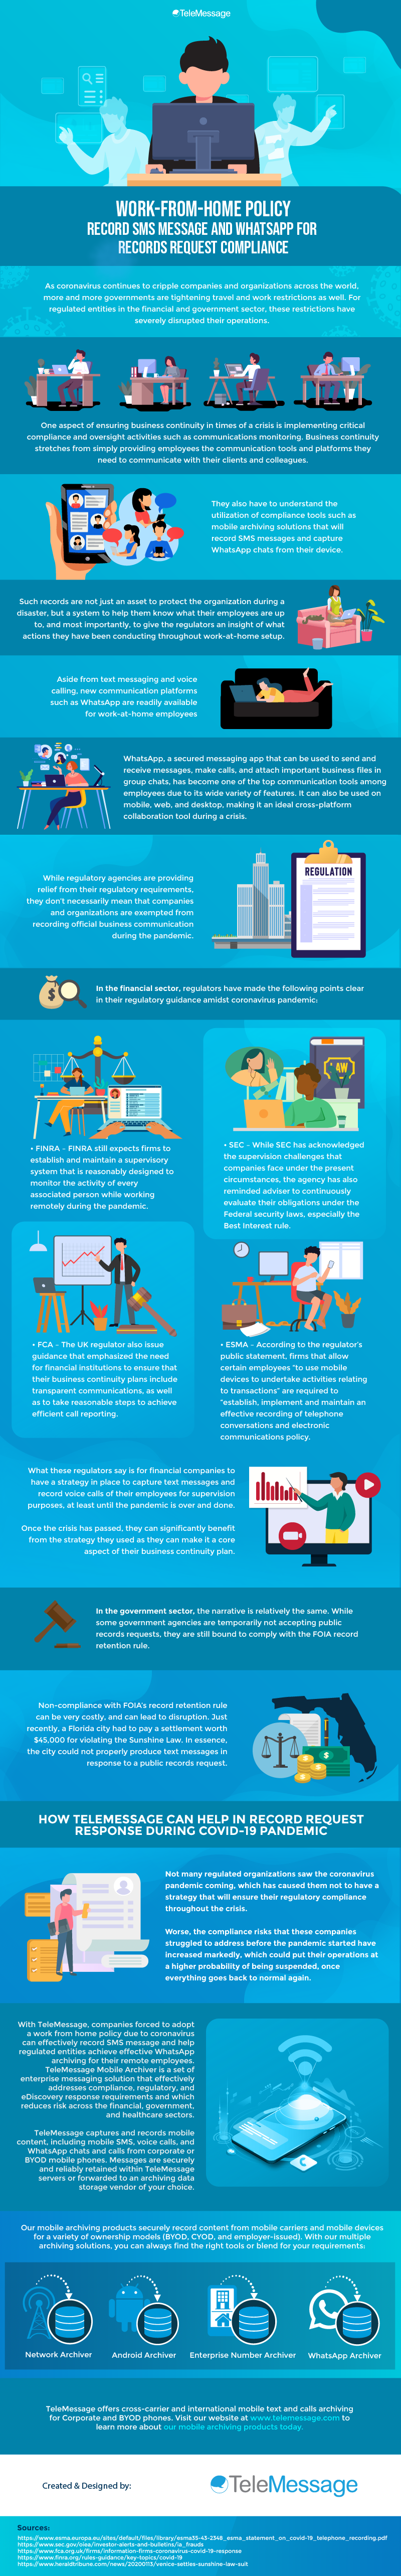 Work-from-Home Policy – Record SMS Message and Record Voice Calls for Records Request Compliance #Infographic